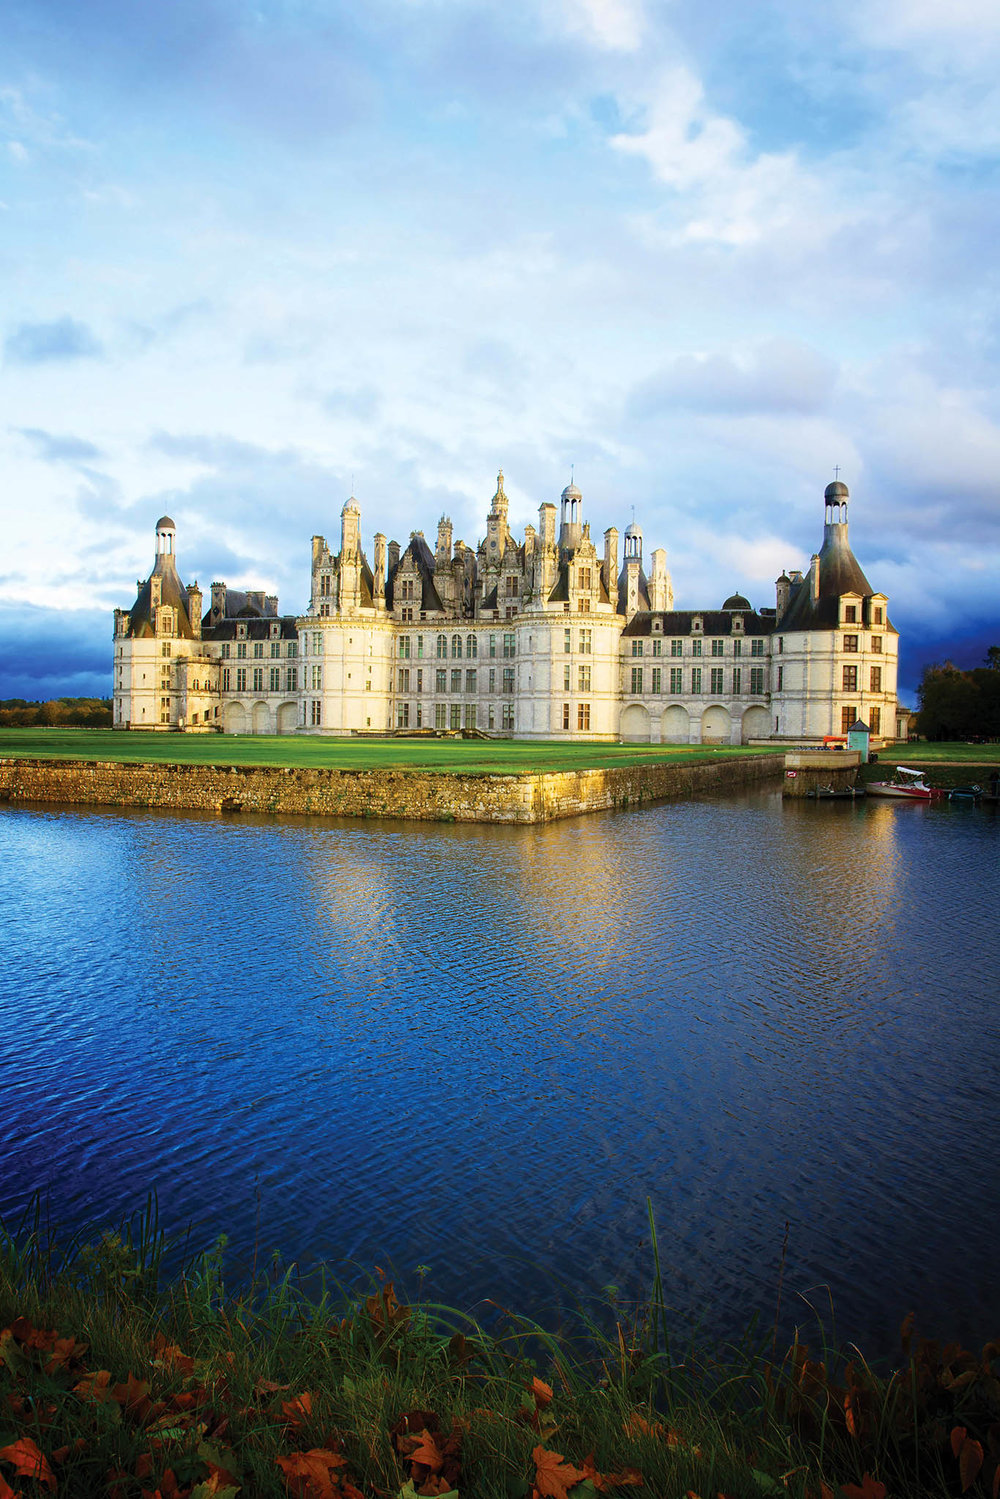 The Chambord Chateau was a favourite retreat for Louis XIV, who staged the plays of Moliere here.Neirfy / shutterstock.com